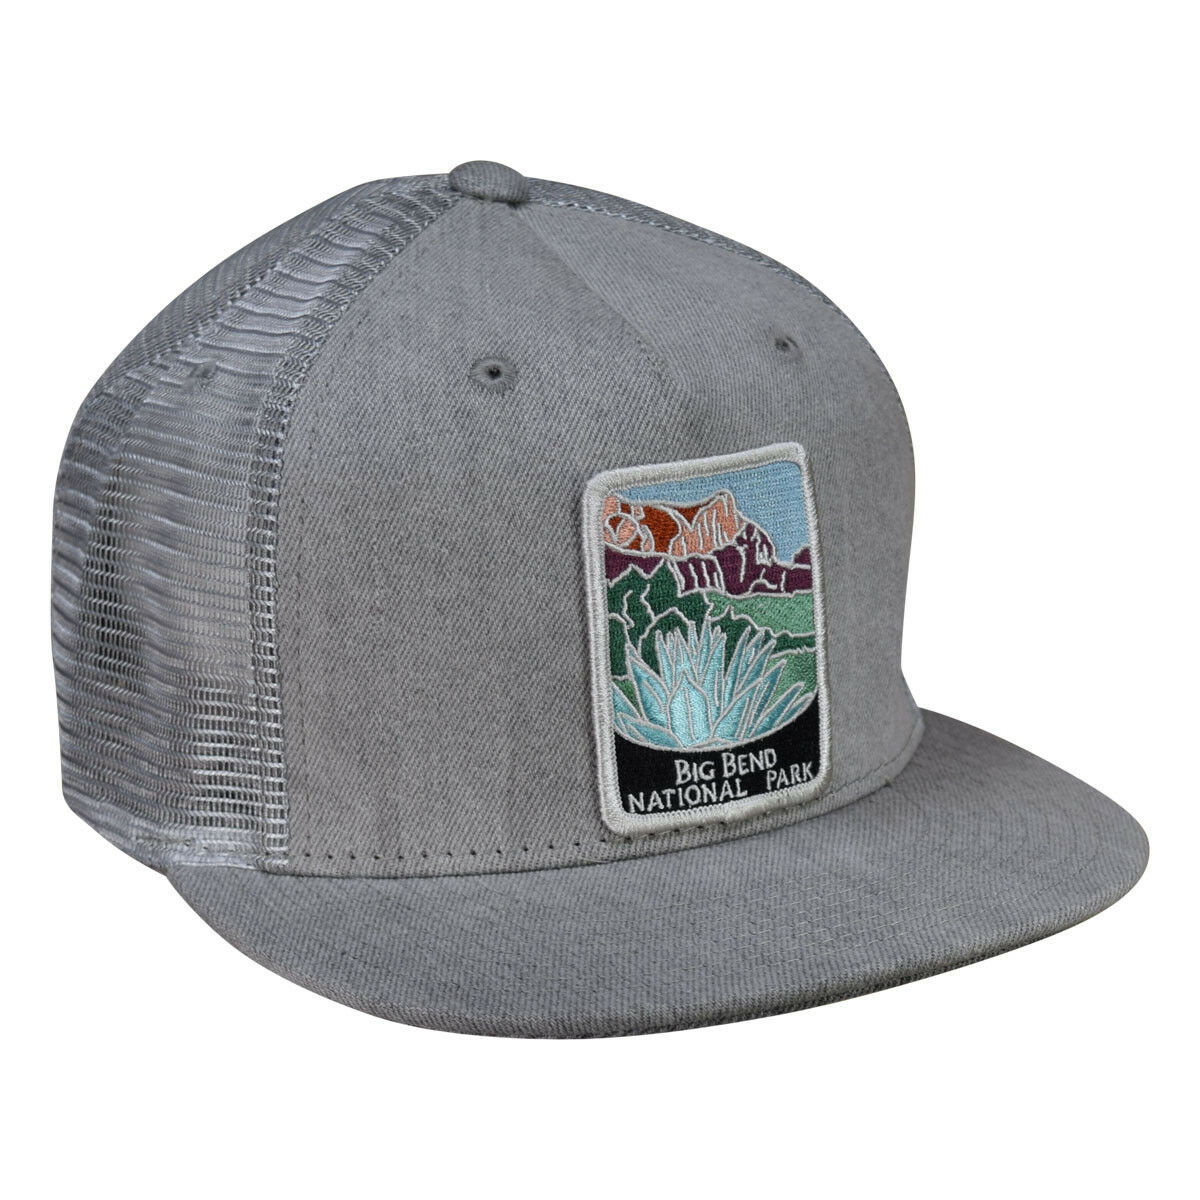 Primary image for Big Bend National Park Trucker Hat by LET'S BE IRIE - Gray Denim Snapback